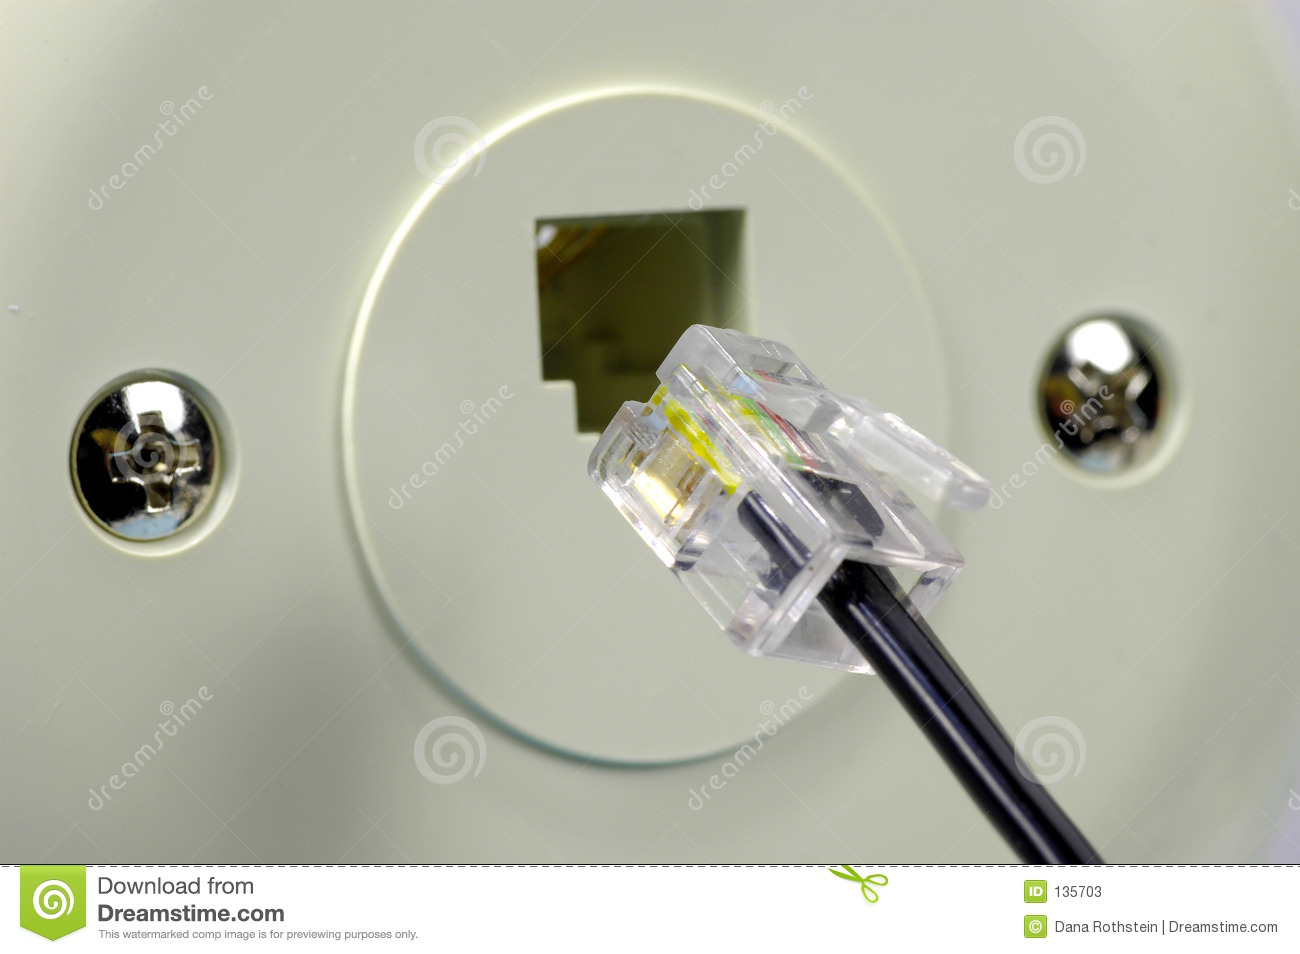 rj12 wiring diagram shed roof telephone jack stock photos - image: 135703